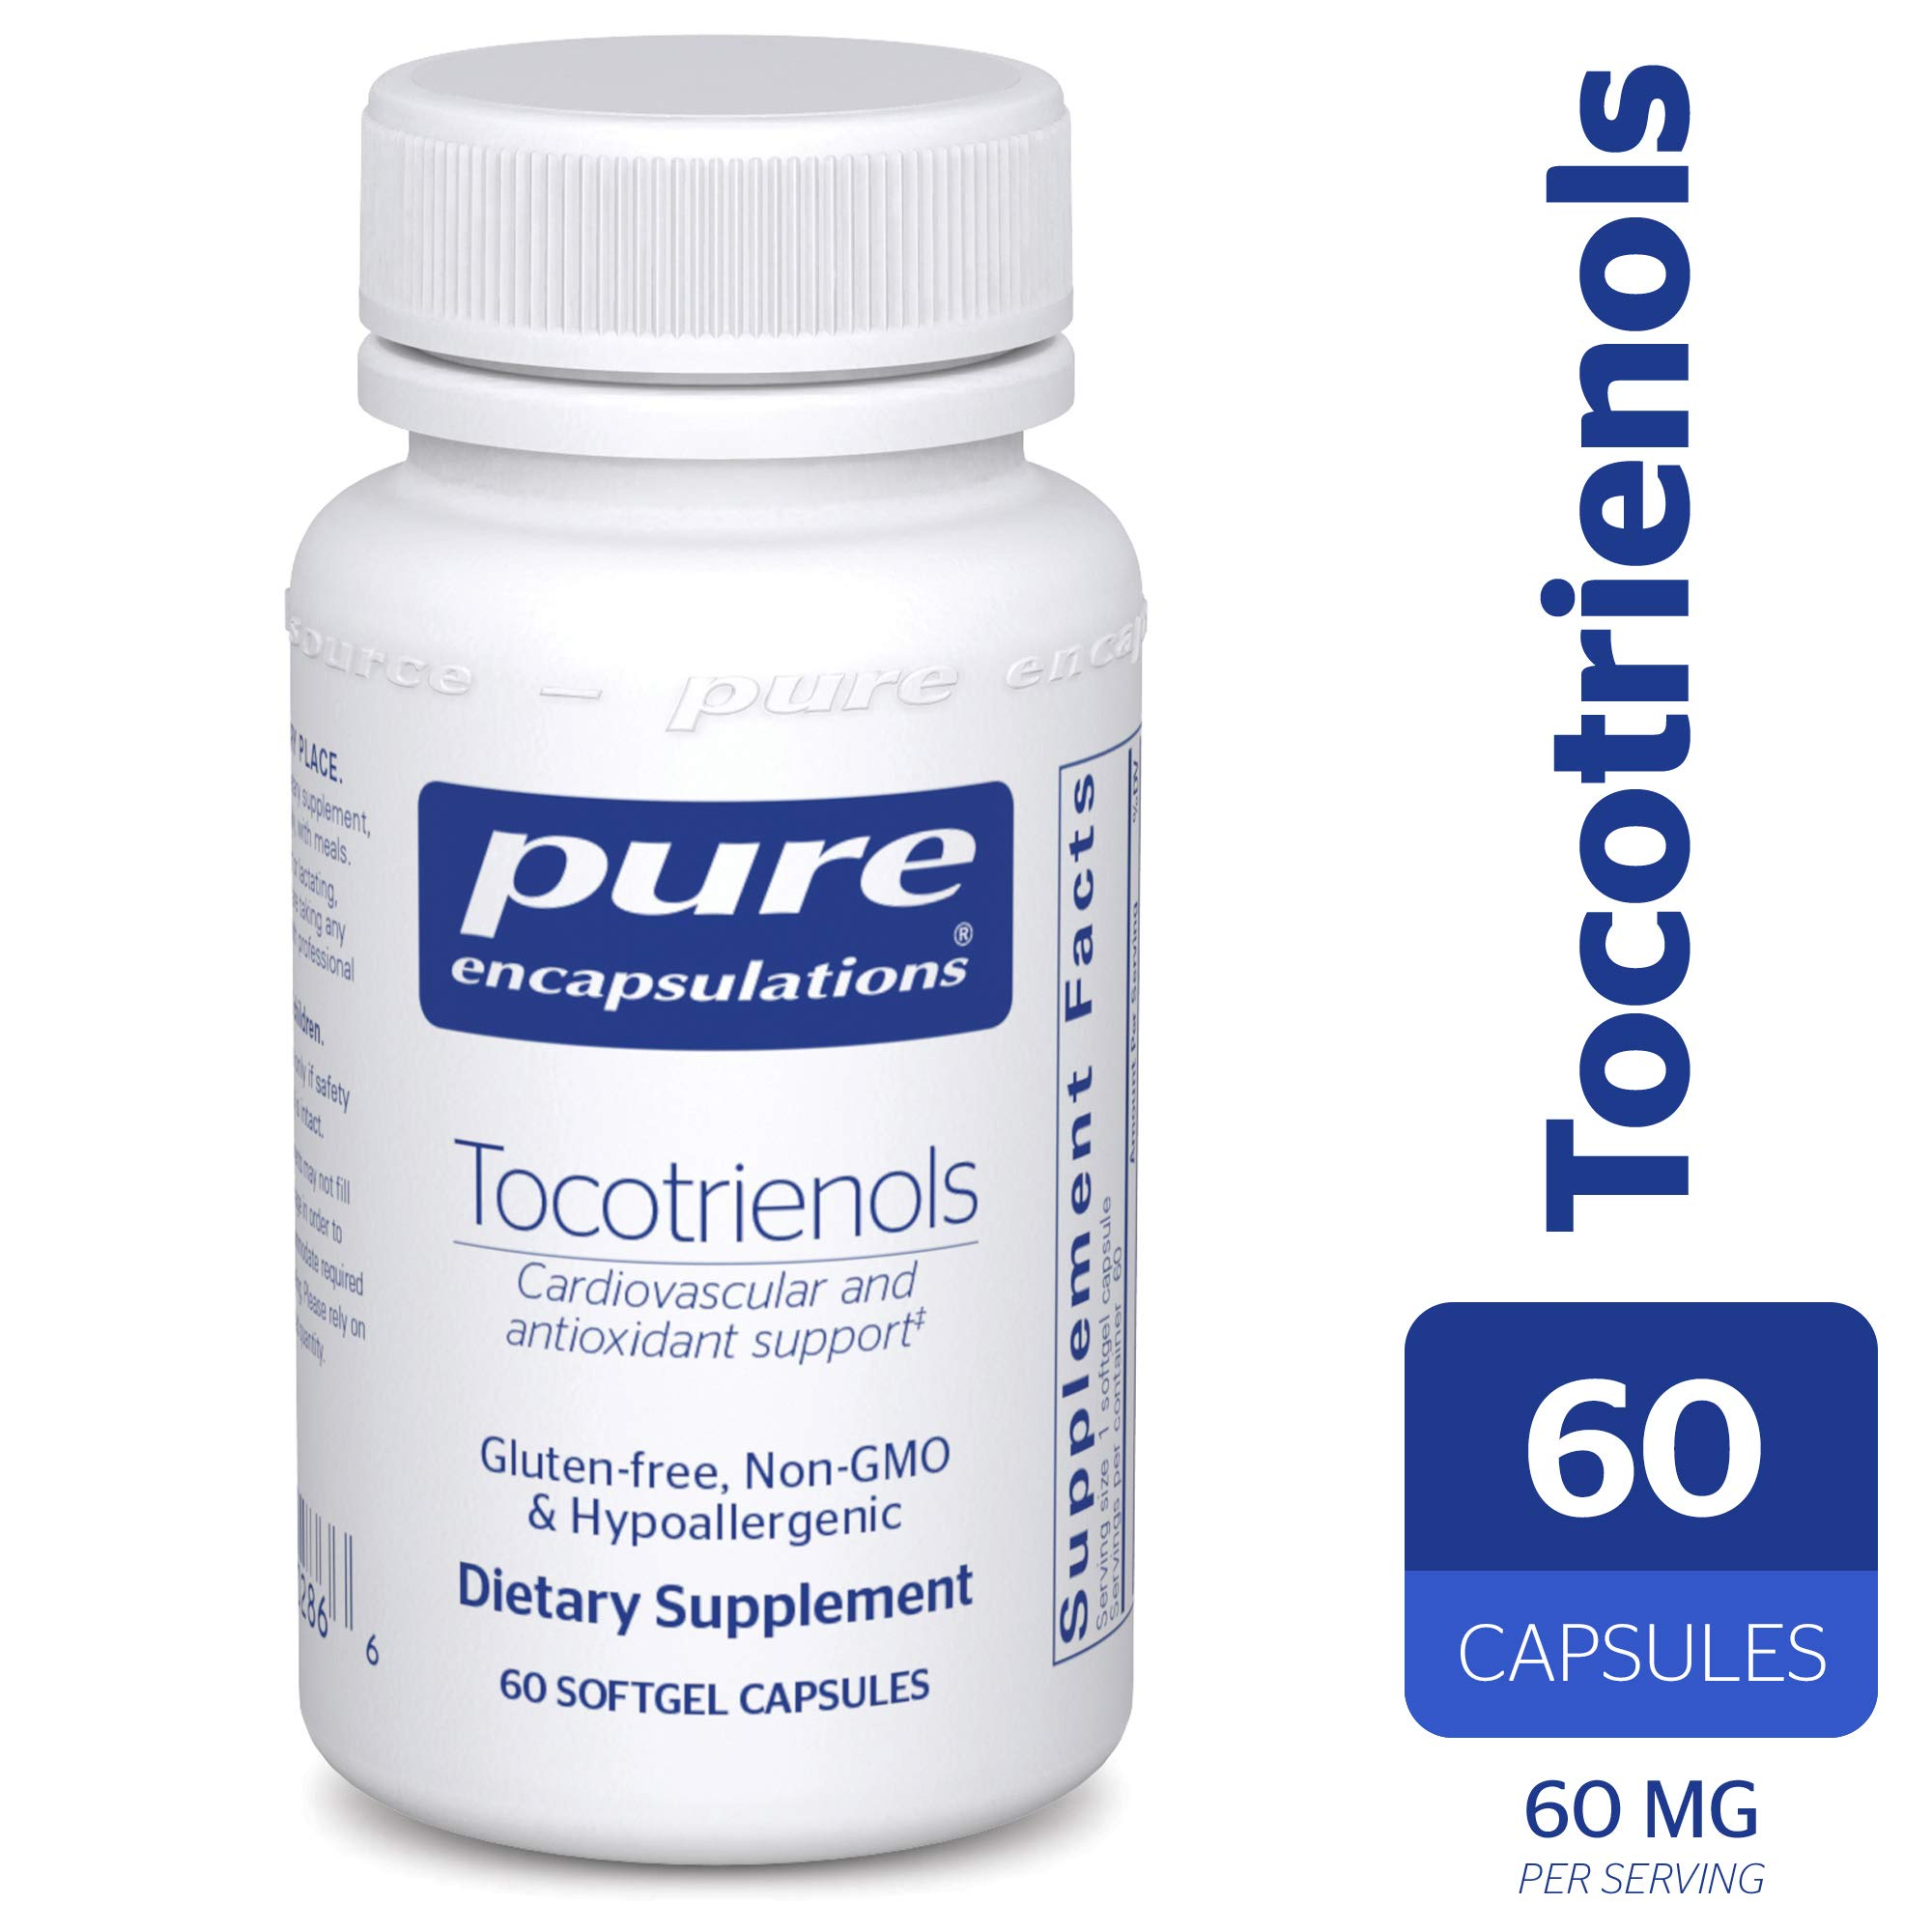 Pure Encapsulations - Tocotrienols - Hypoallergenic Supplement with Mixed Tocopherols for Cardiovascular and Antioxidant Support* - 60 Softgel Capsules